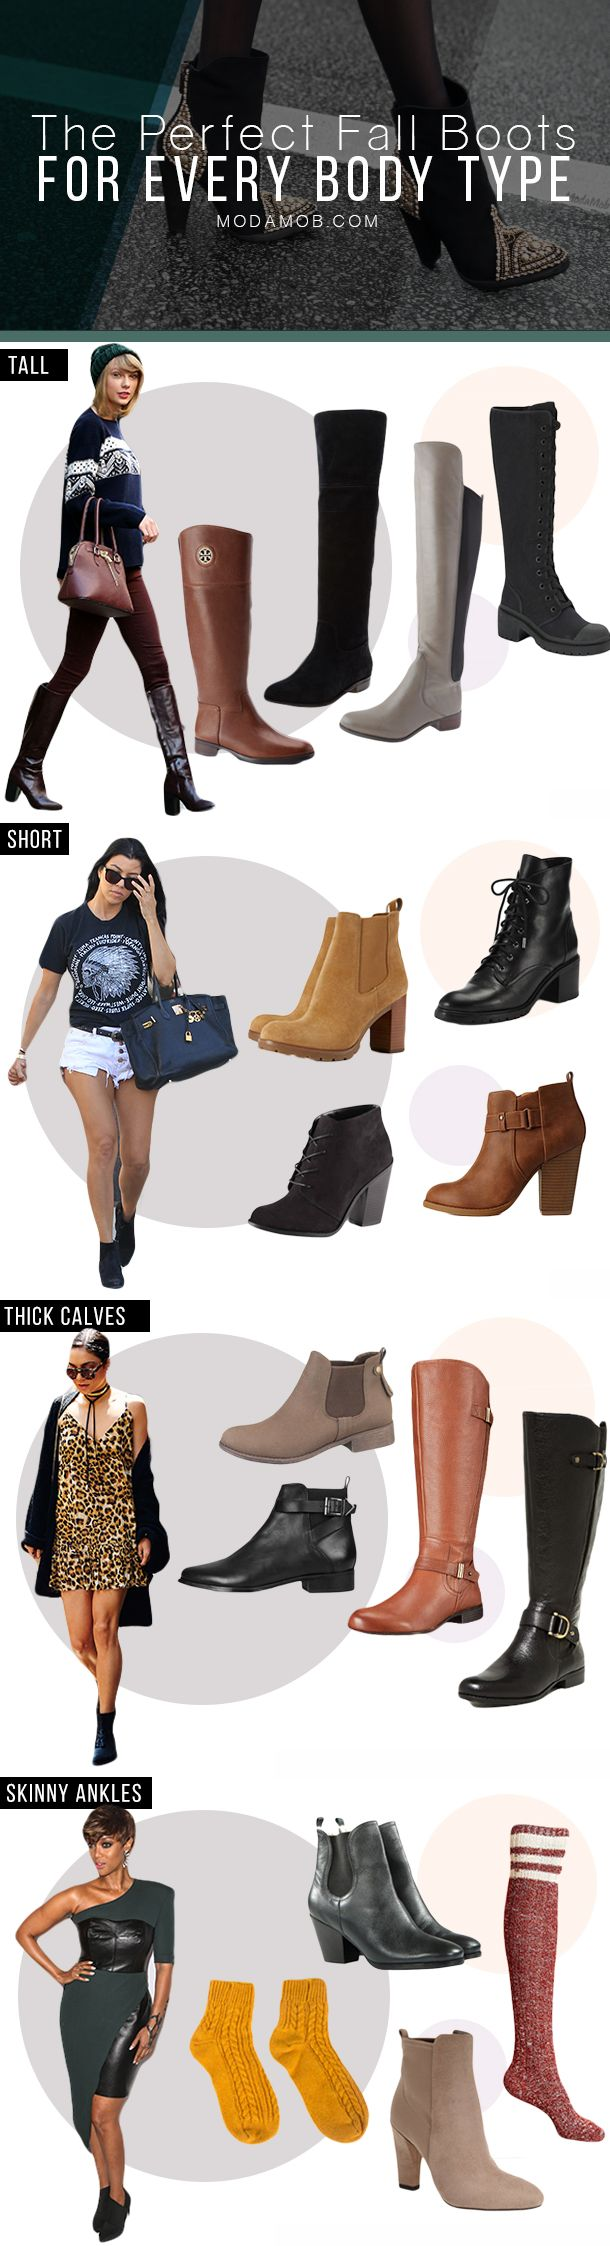 Fall Boots For Your Body Type